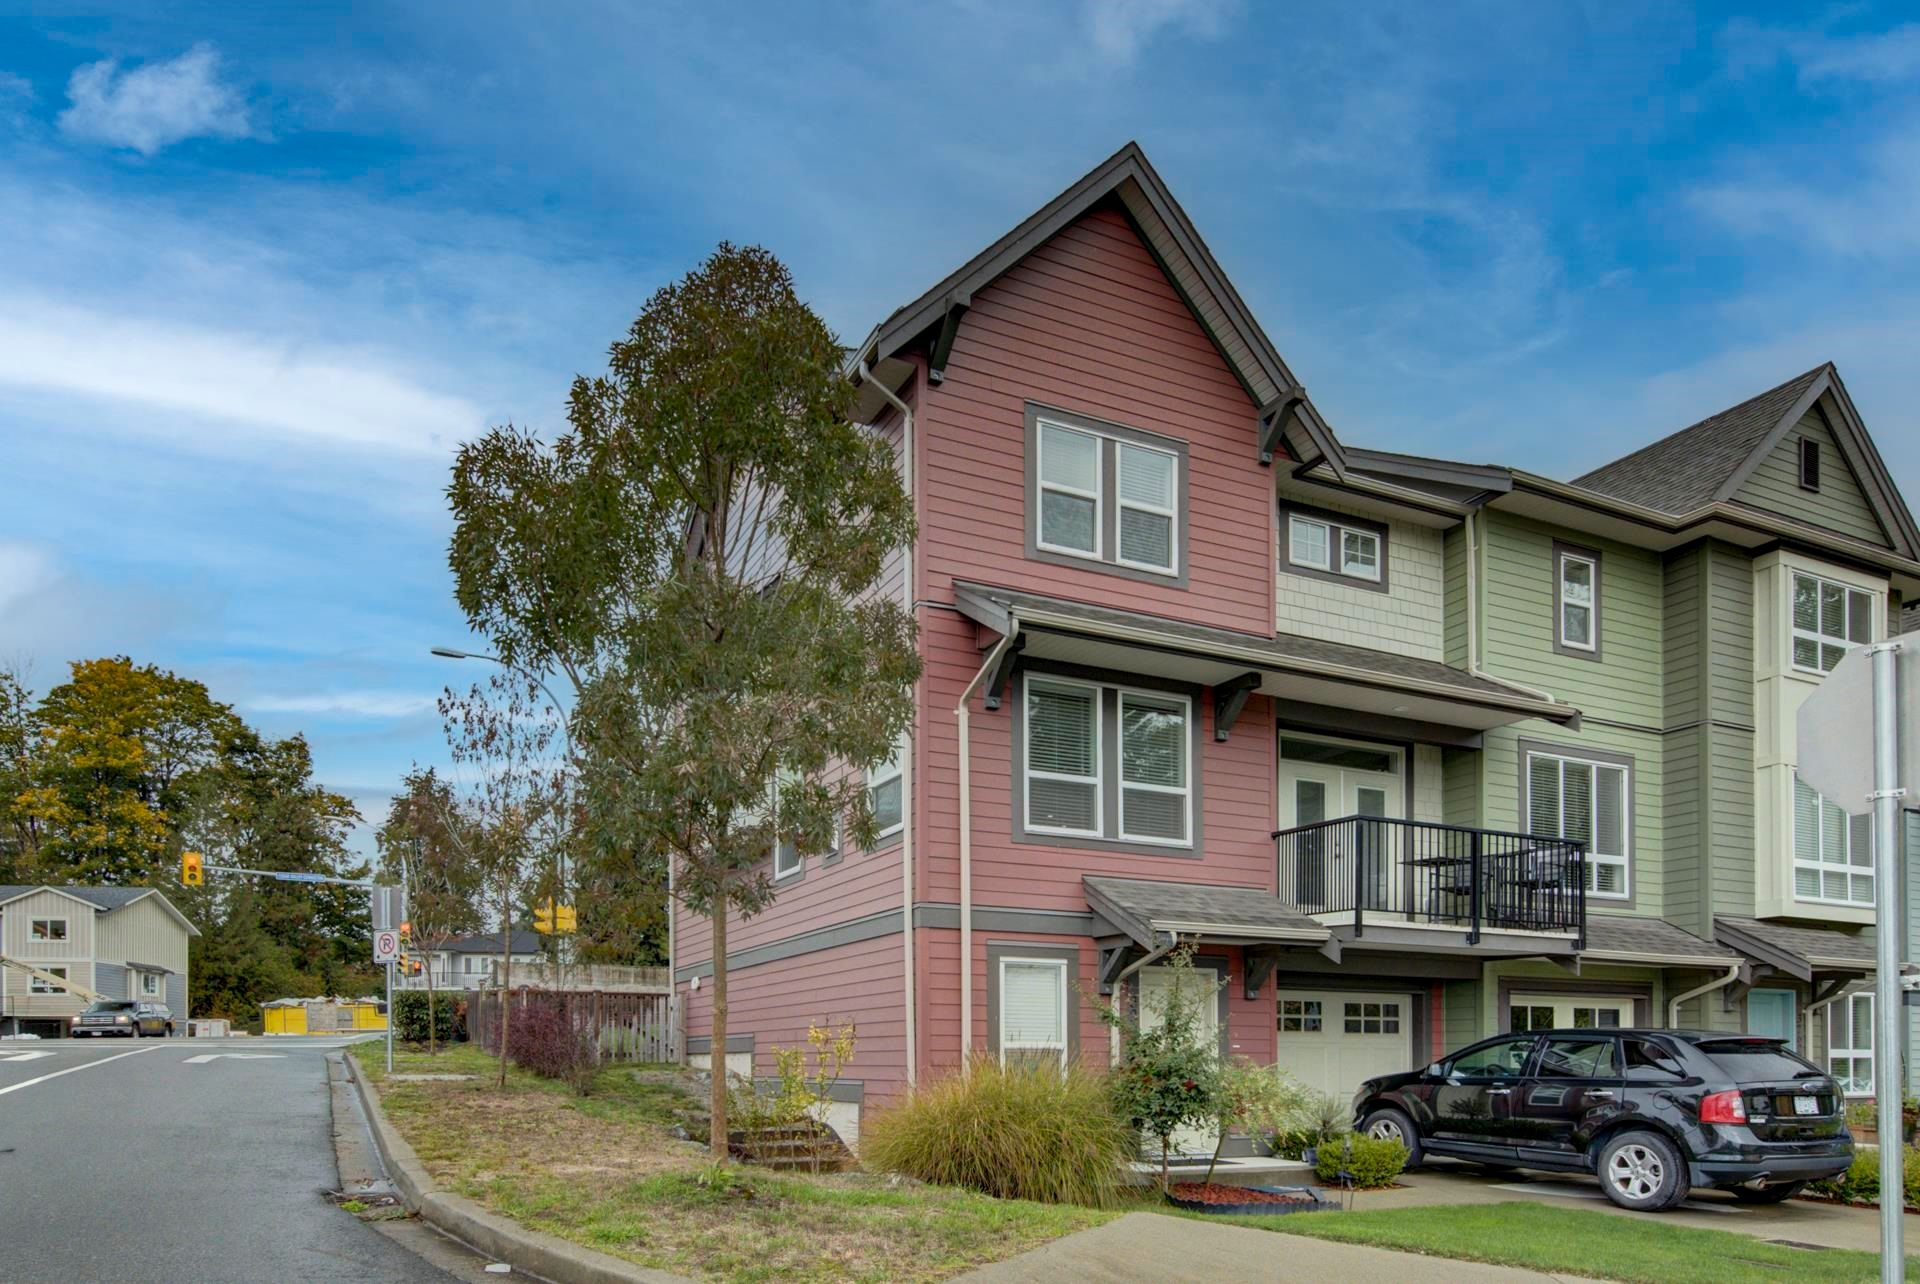 """Main Photo: 32619 PRESTON Boulevard in Mission: Mission BC House for sale in """"HORNE CREEK"""" : MLS®# R2625065"""